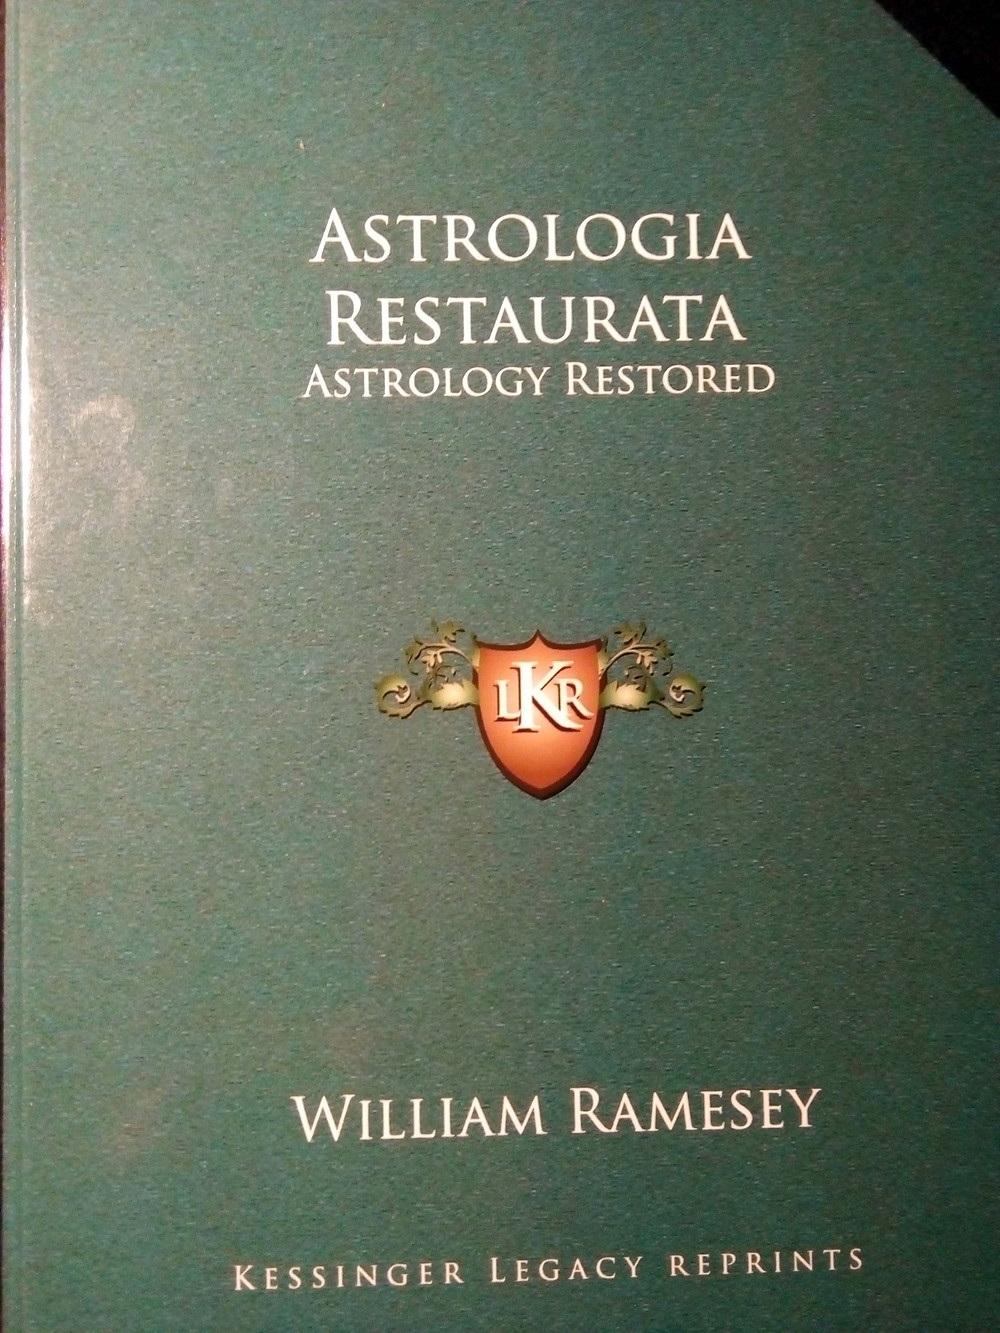 Astrology blog, Hard cover